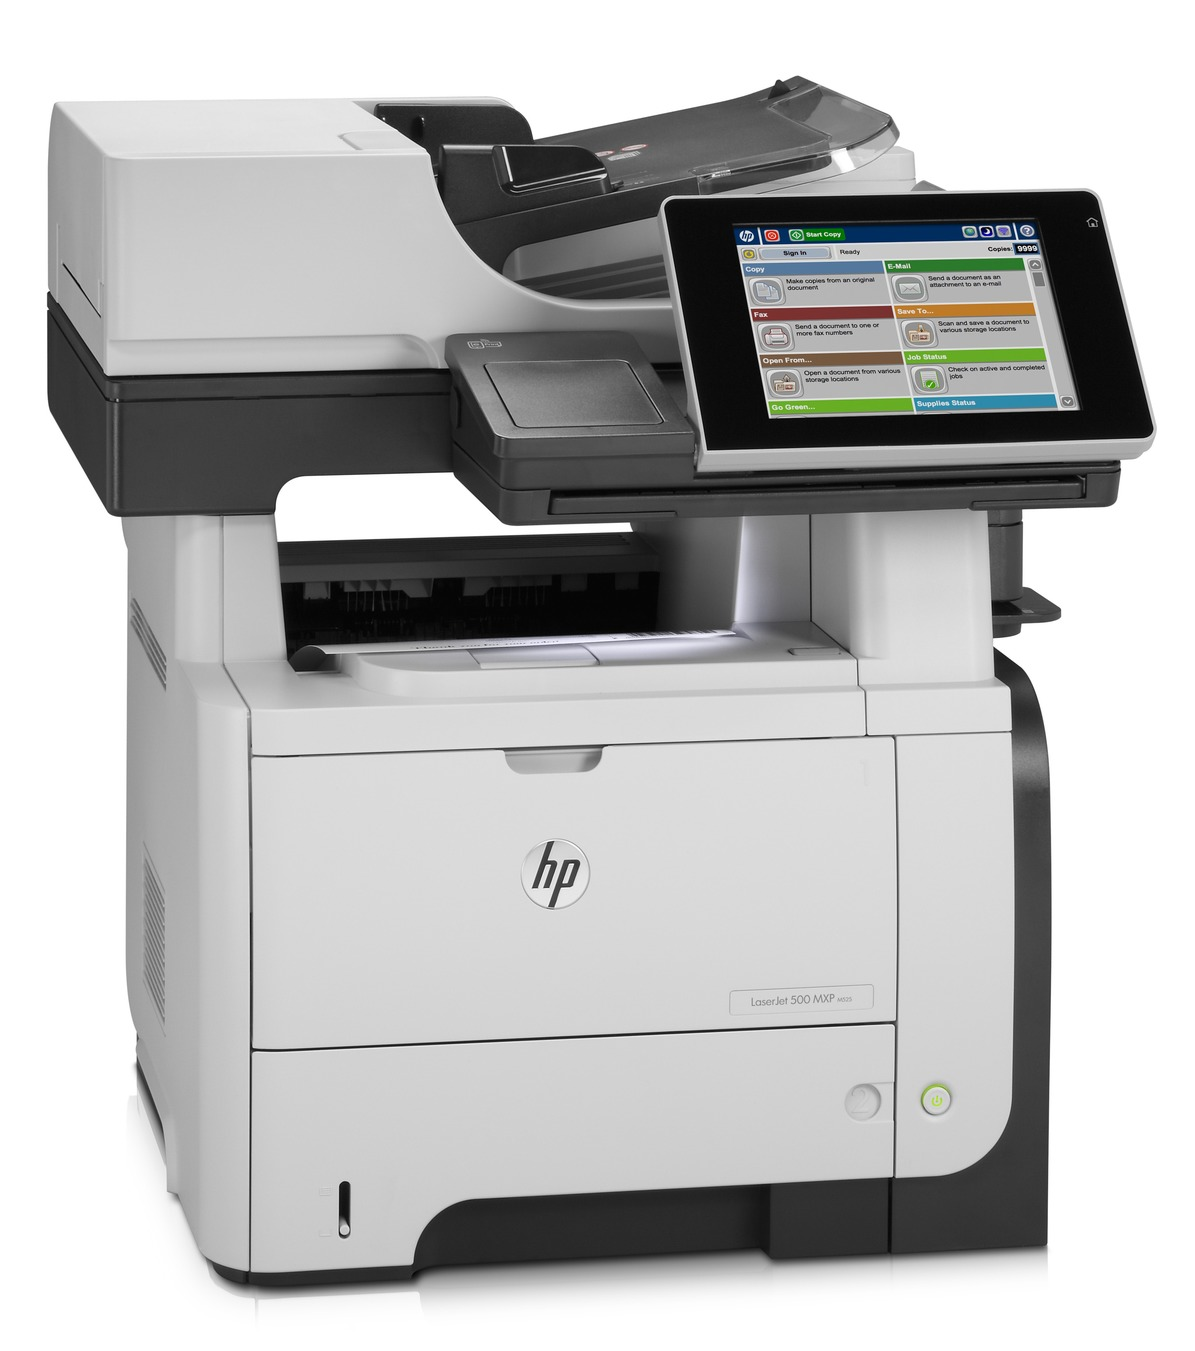 About the HP LaserJet Enterprise Flow MFP M525C